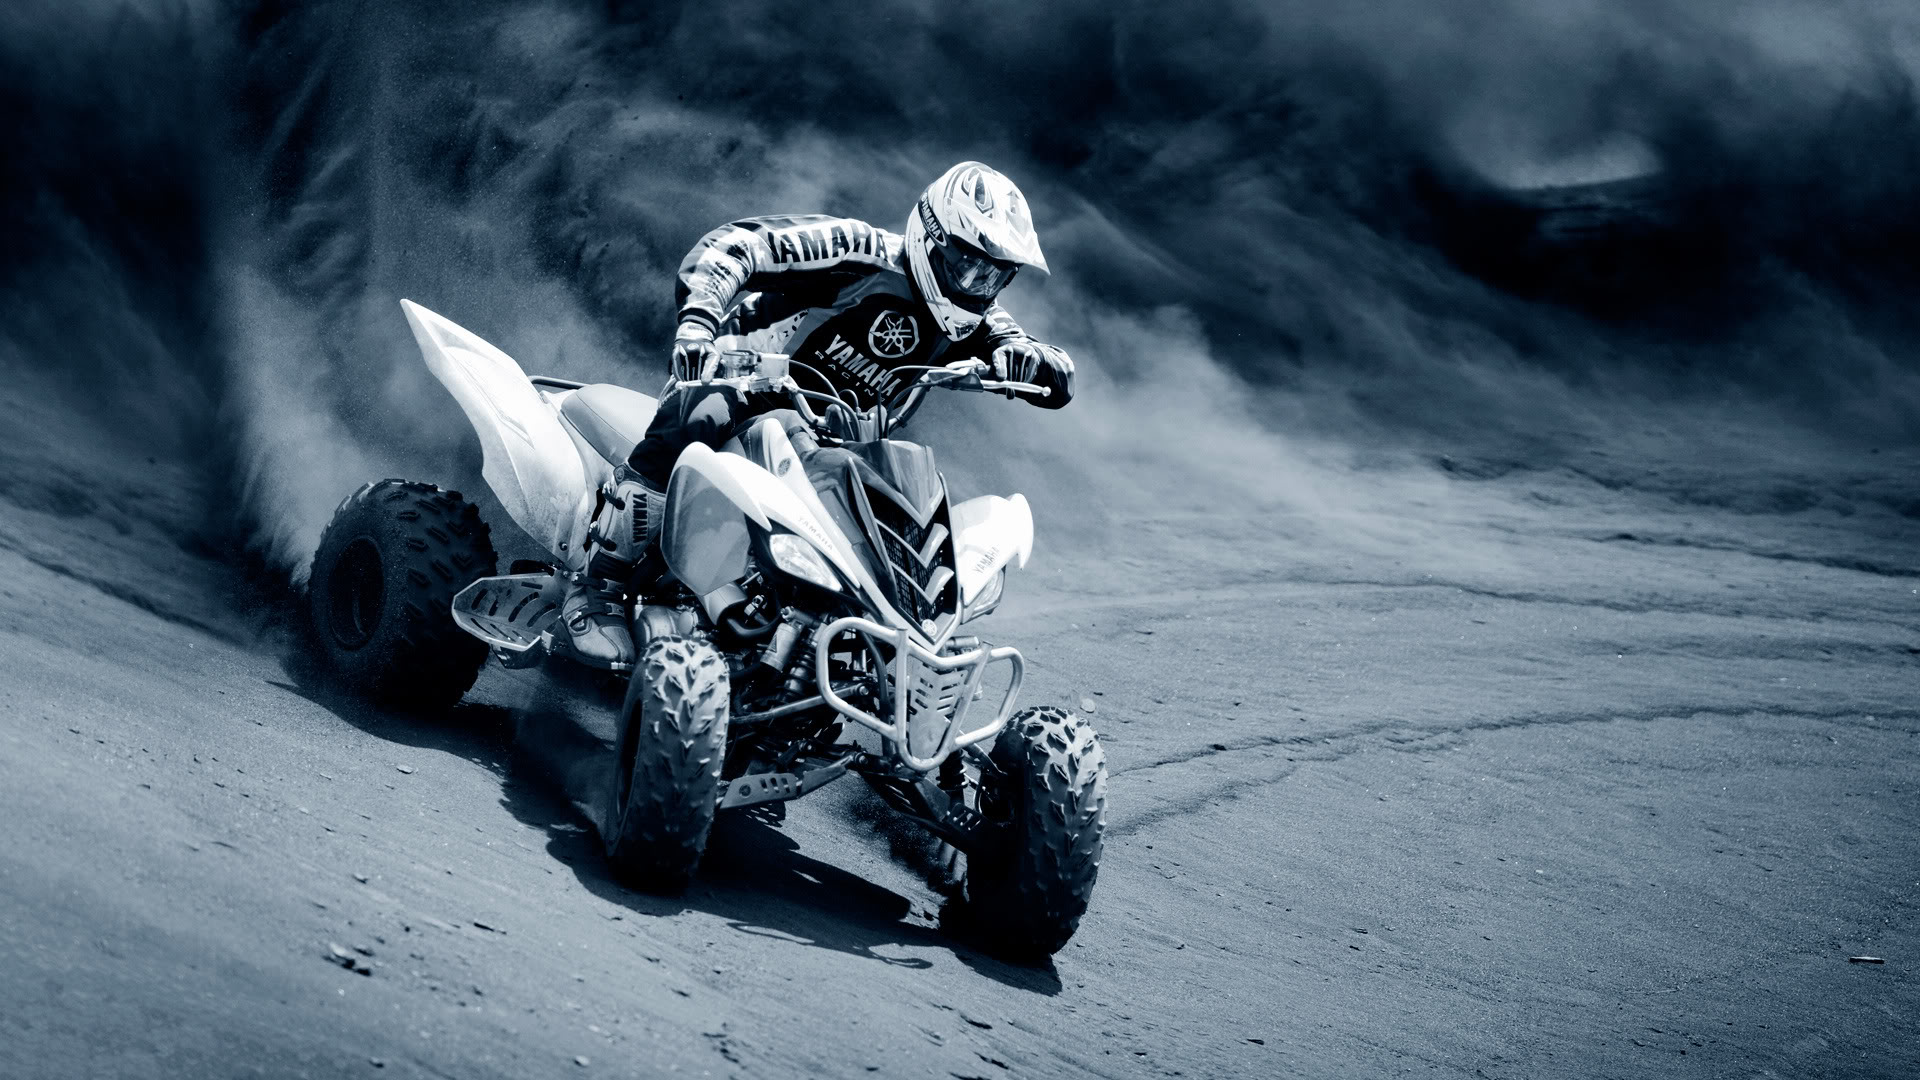 ... f223af1e5806c596a83e138bf2a33454 honda_trx700xx_sport_quad_race_atv WH_Day1 0030 proarmor_wallpaper_1280x1024 quad_00282178 Yamaha-ATV-Wallpaper-HD-wide